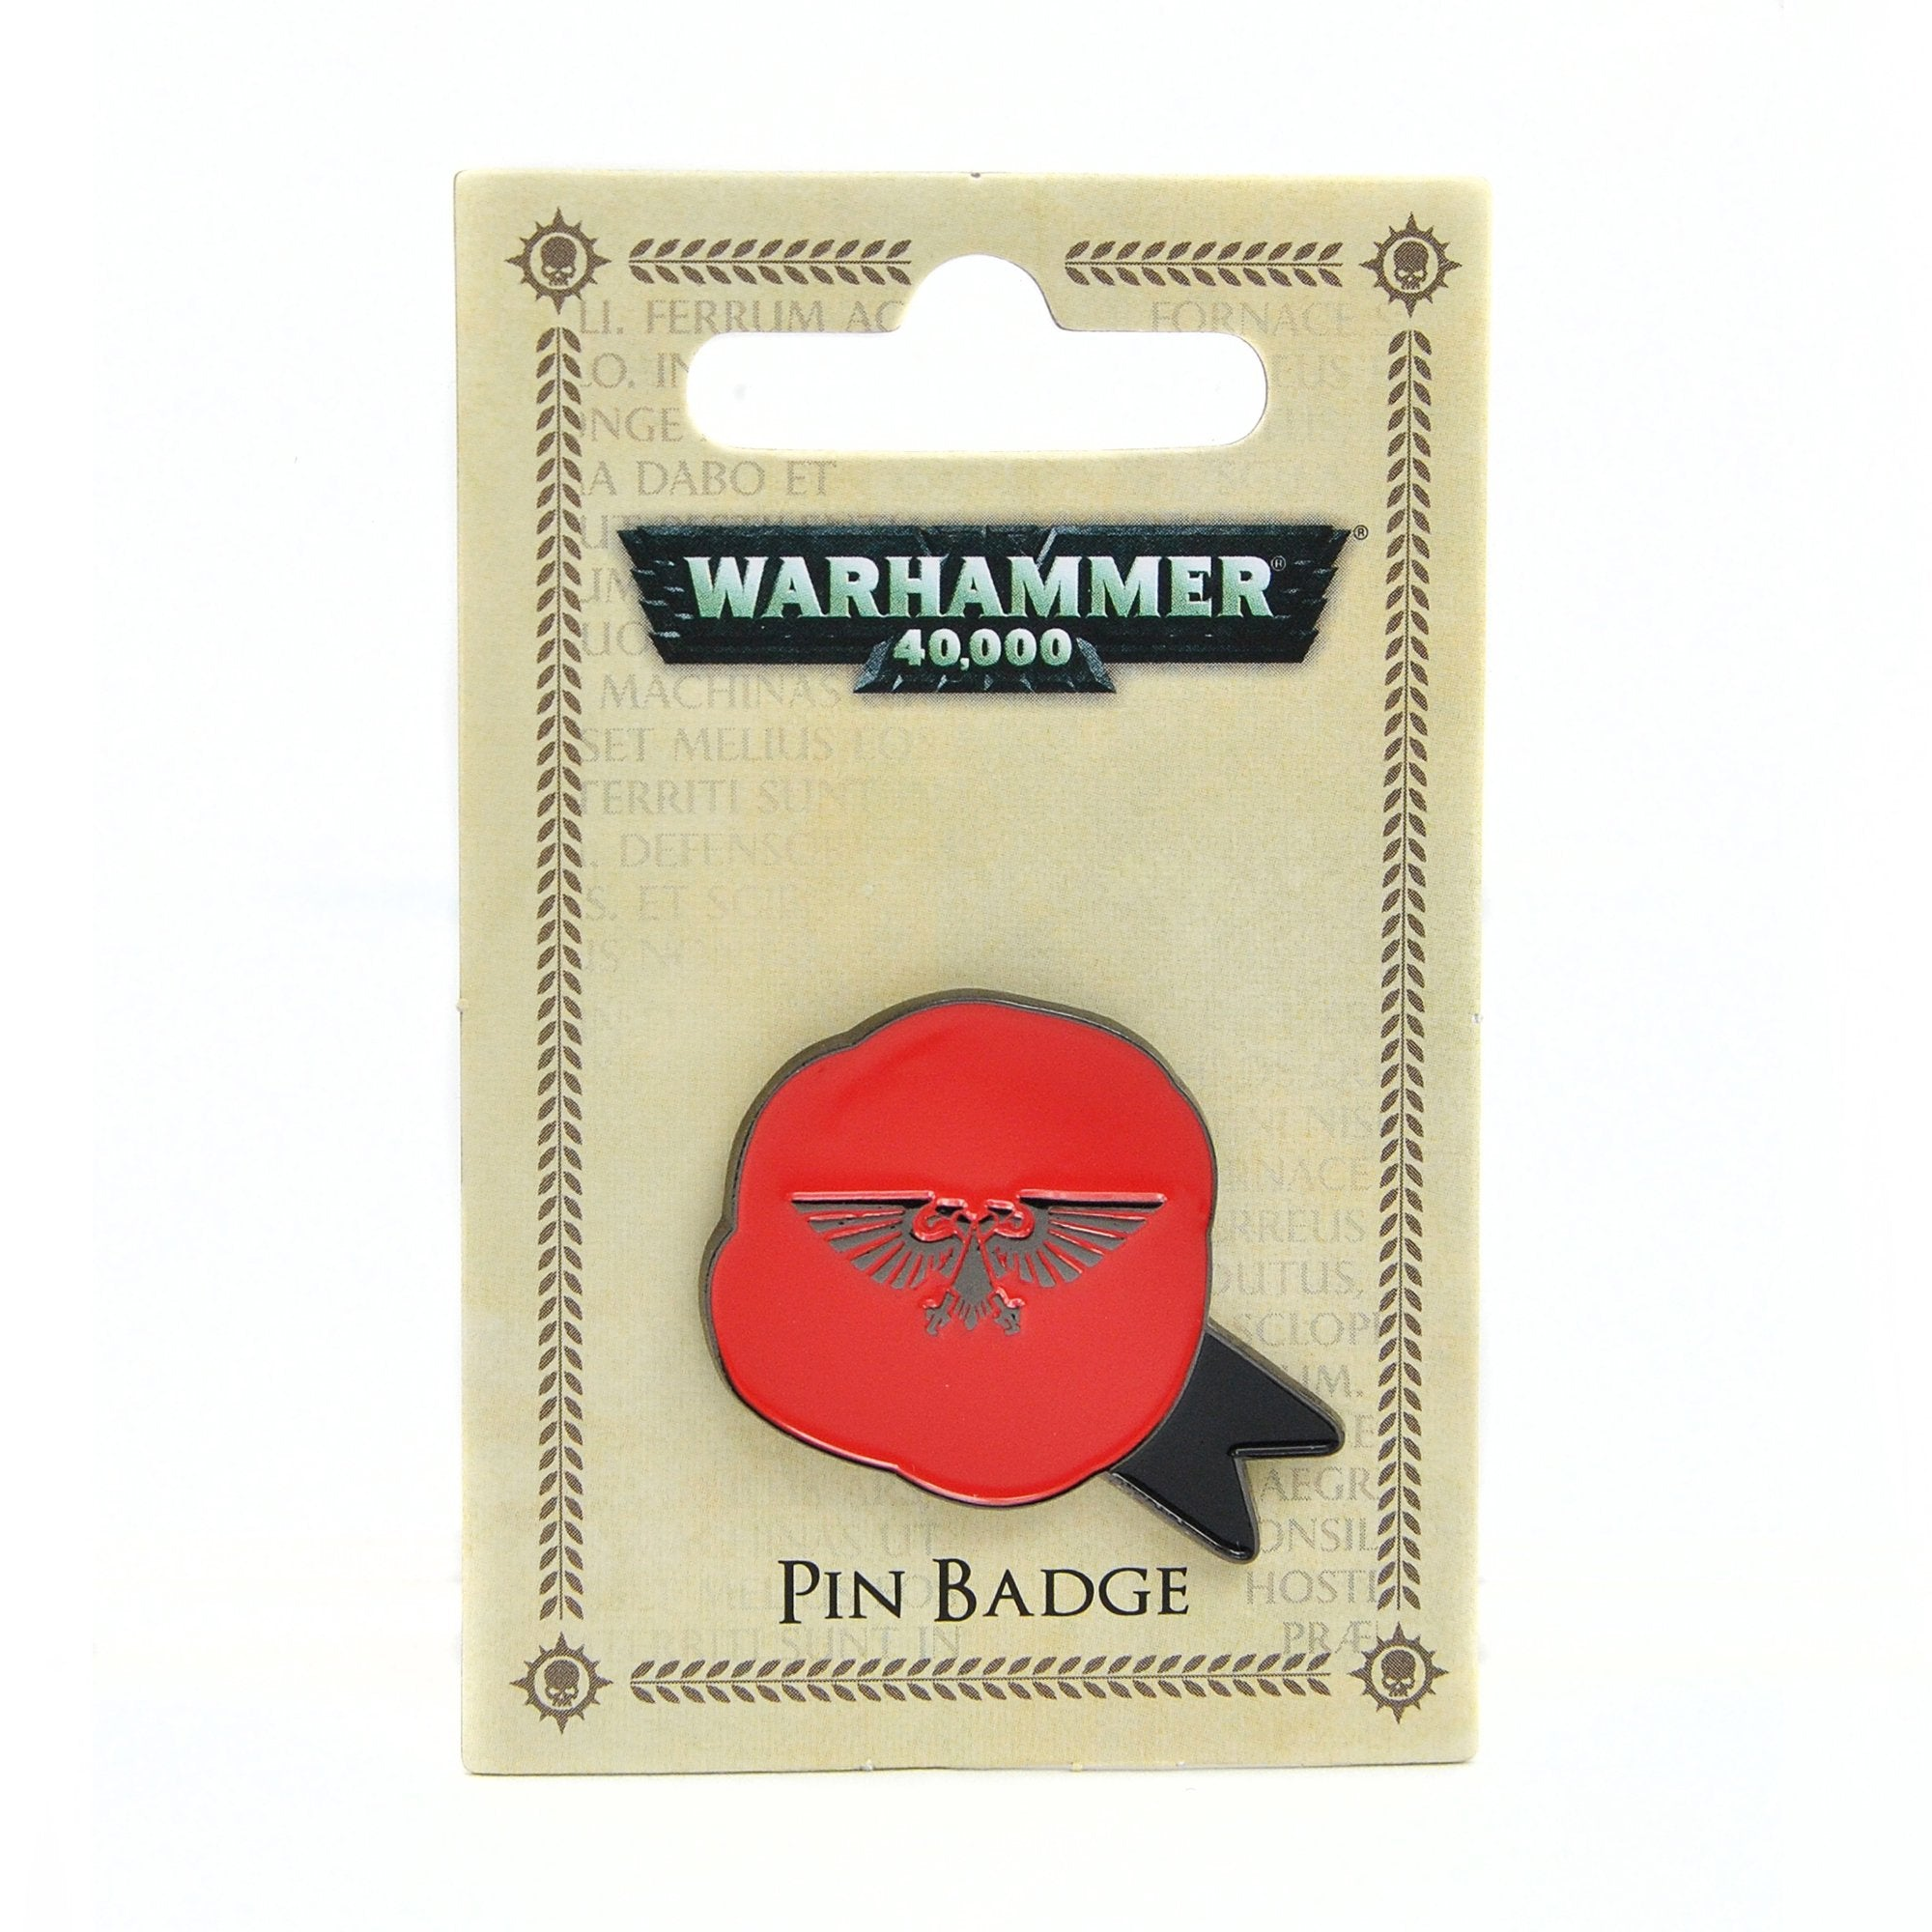 Warhammer 40,000 Pin Badge - Purity Seal - Half Moon Bay US